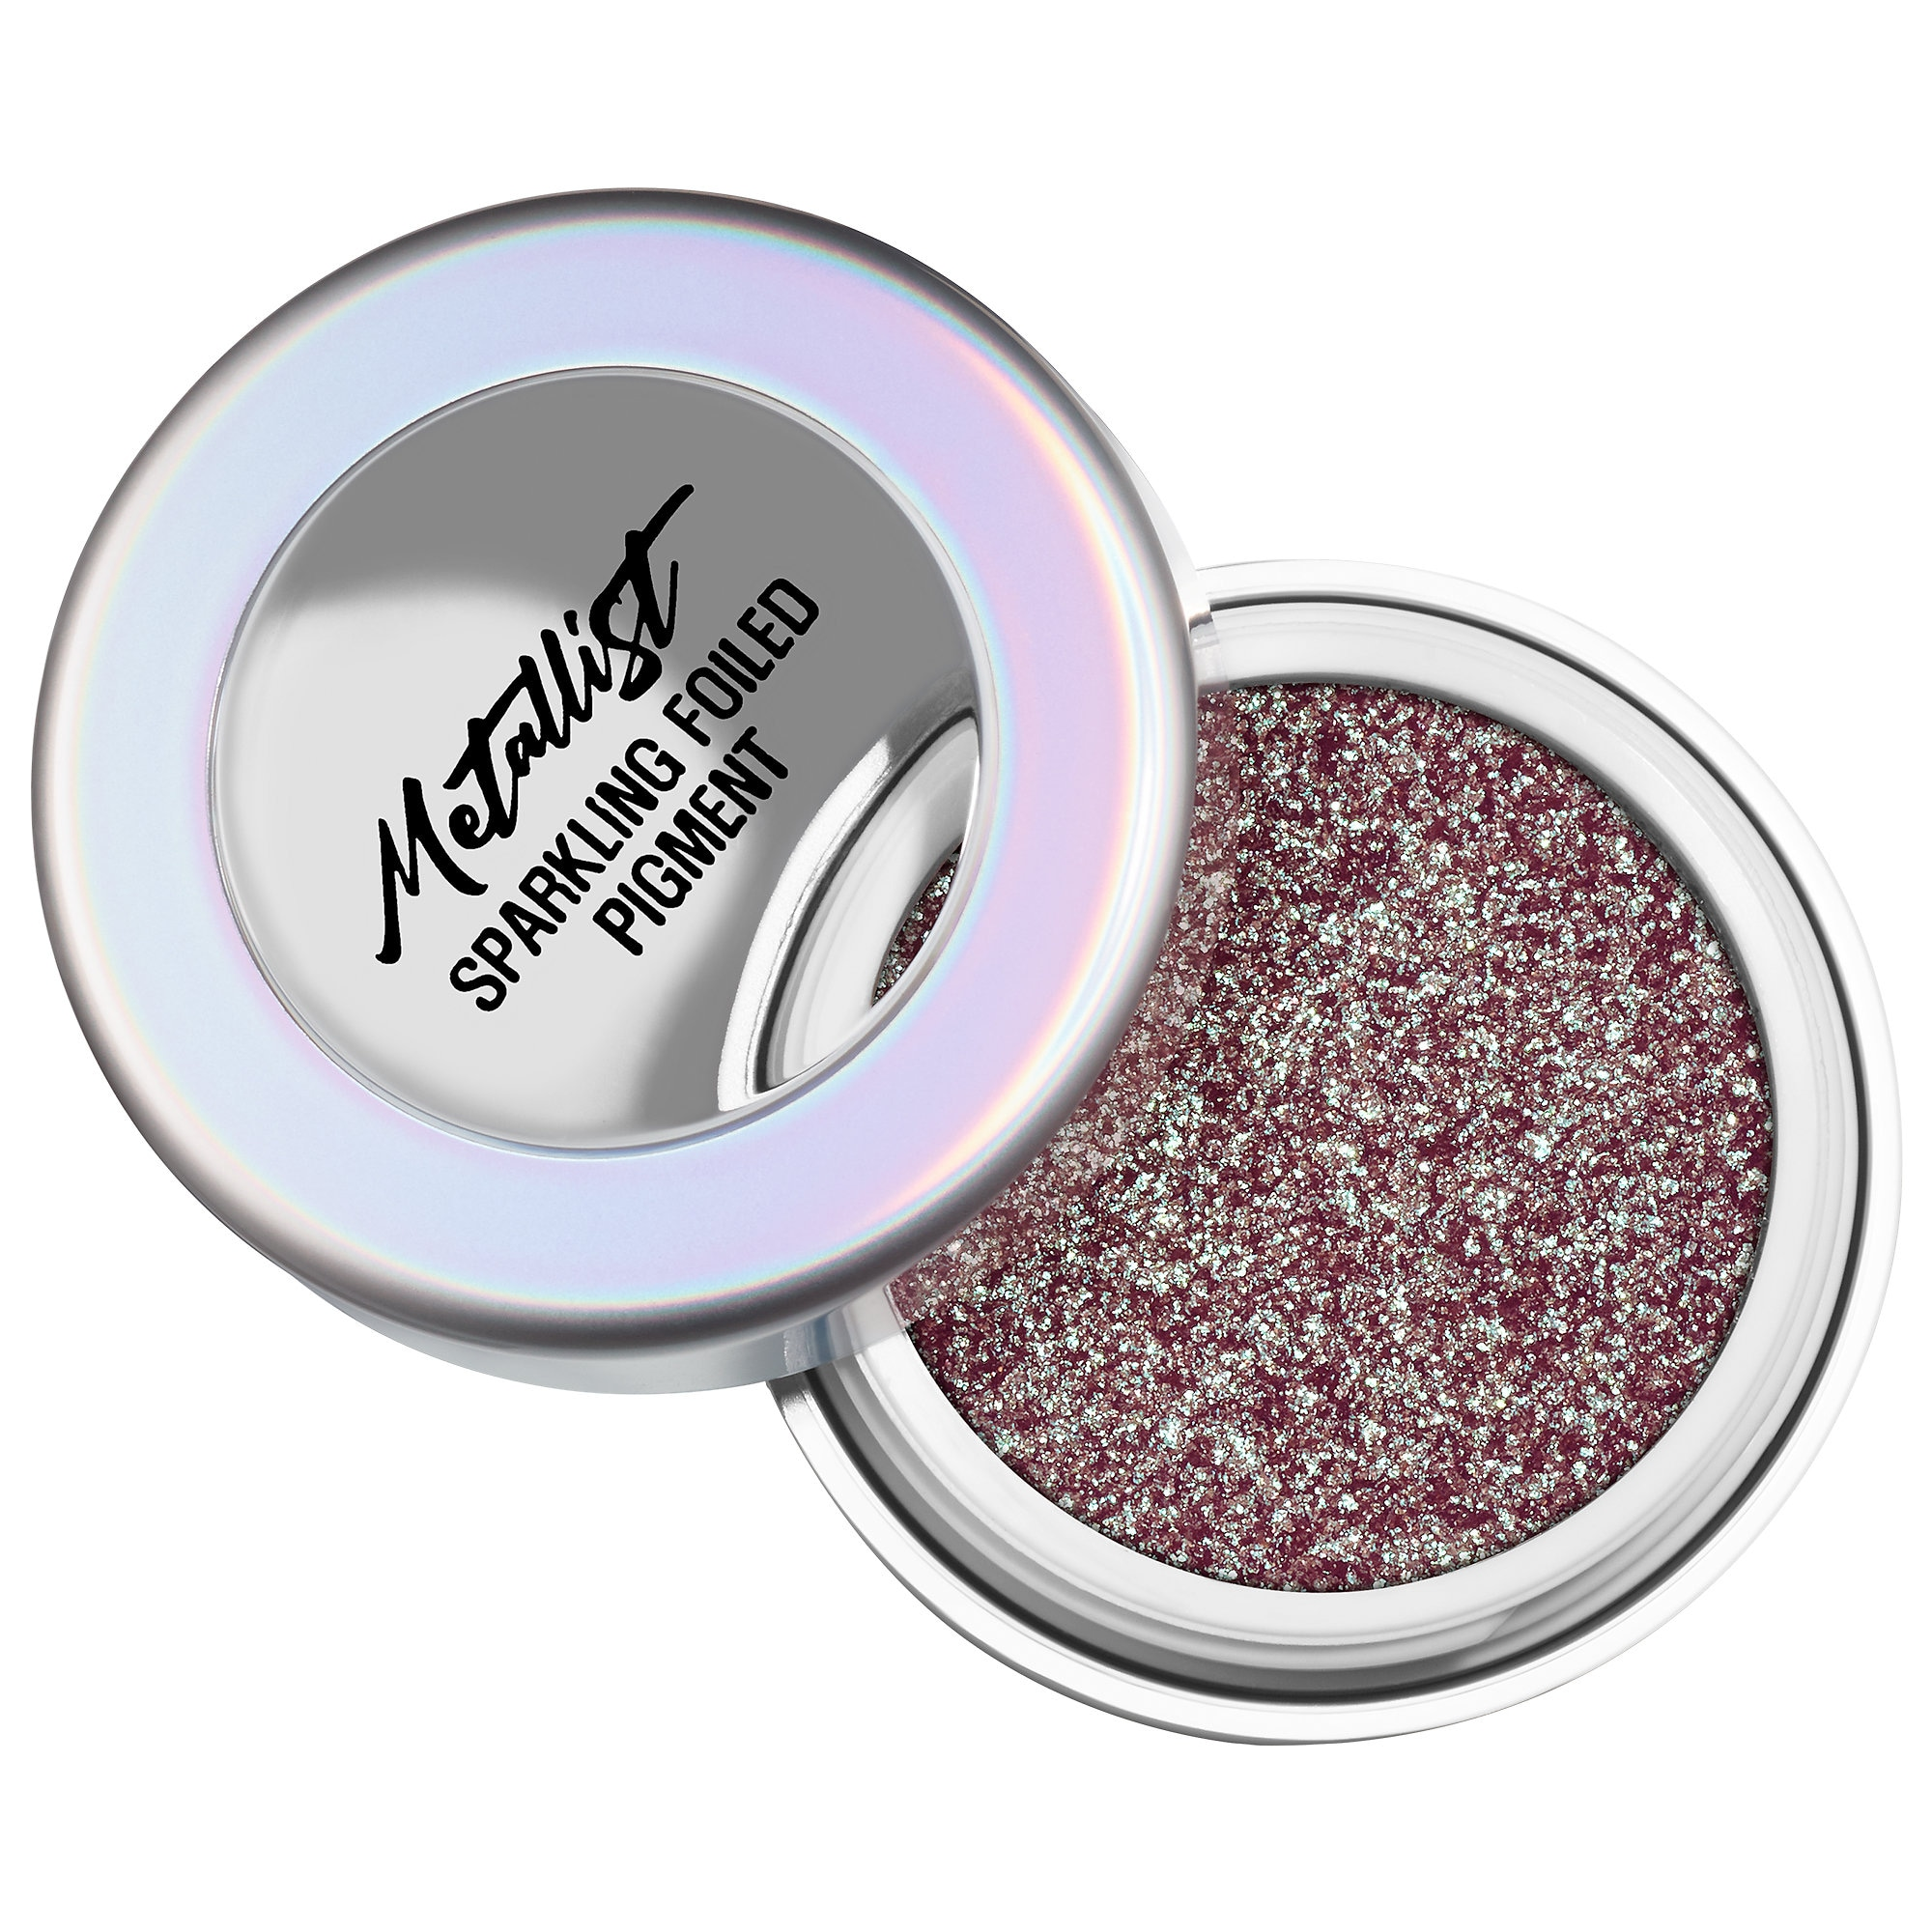 Metallist Sparkling Foiled Eye Shadow - Holo Mulberry